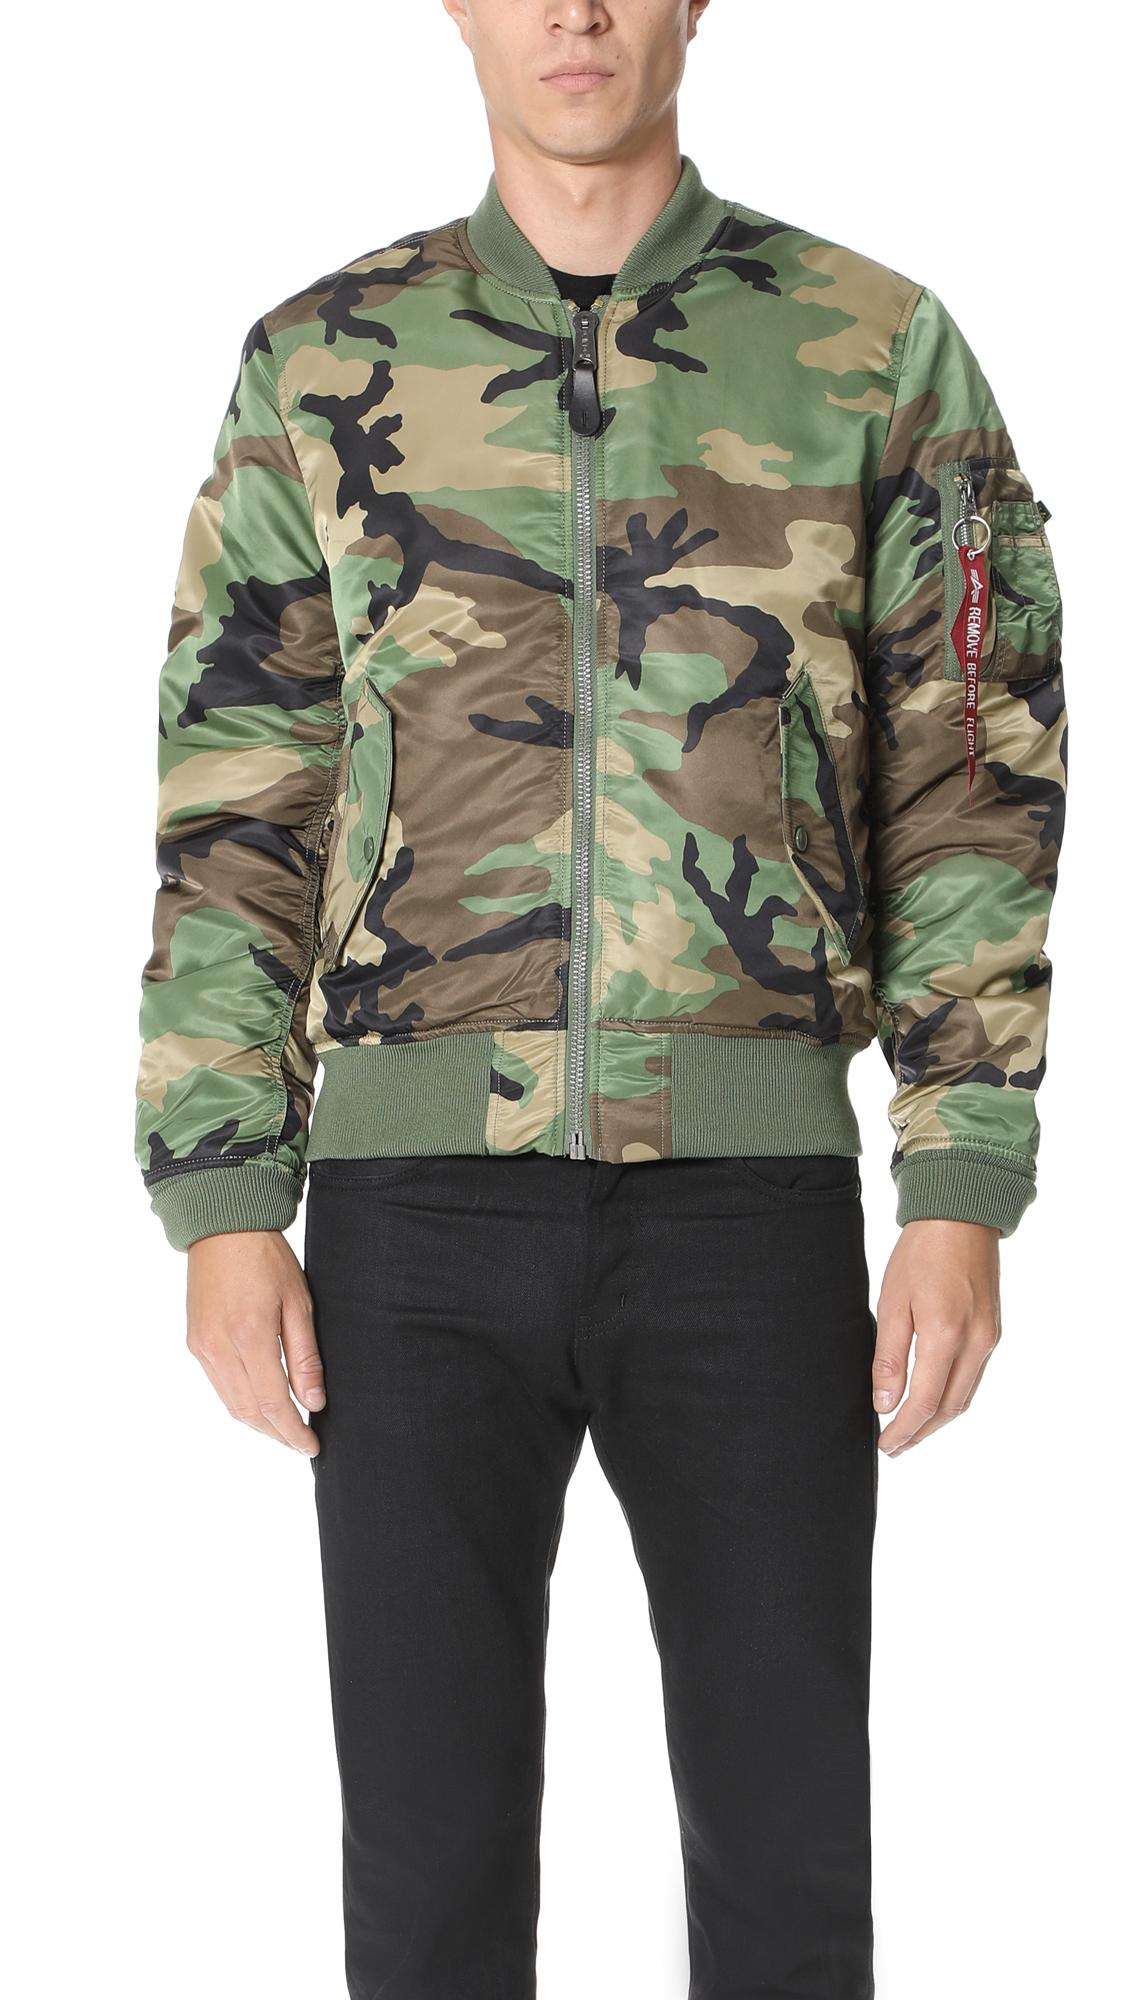 quality design 6434d 7a191 Ma-1 Slim Fit Jacket in Woodland Camo